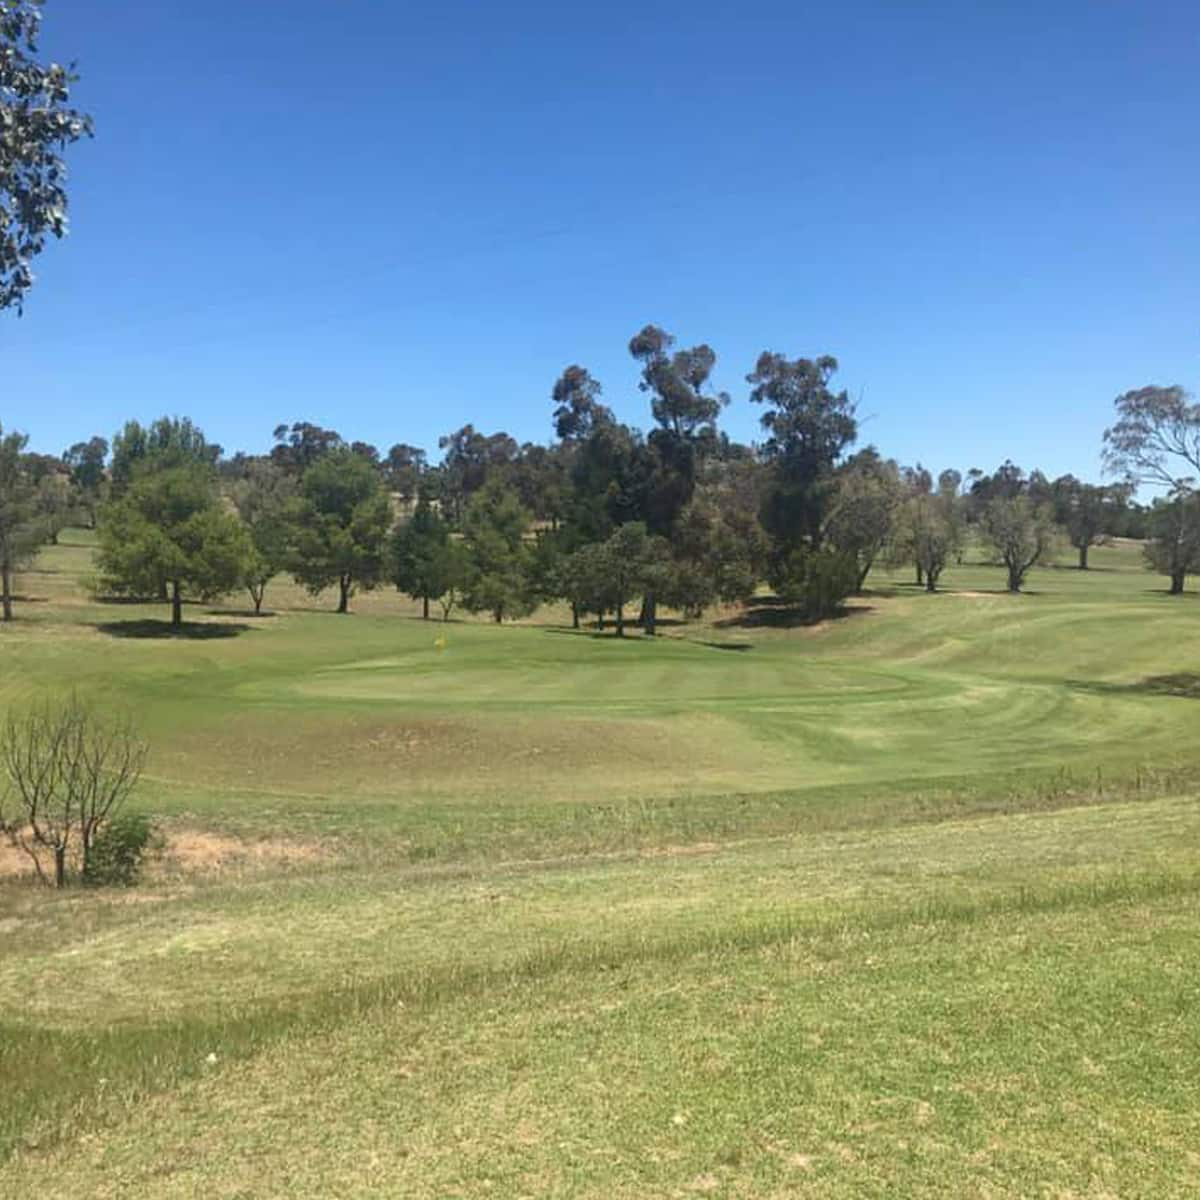 Images of the golf course at Junee Golf Club